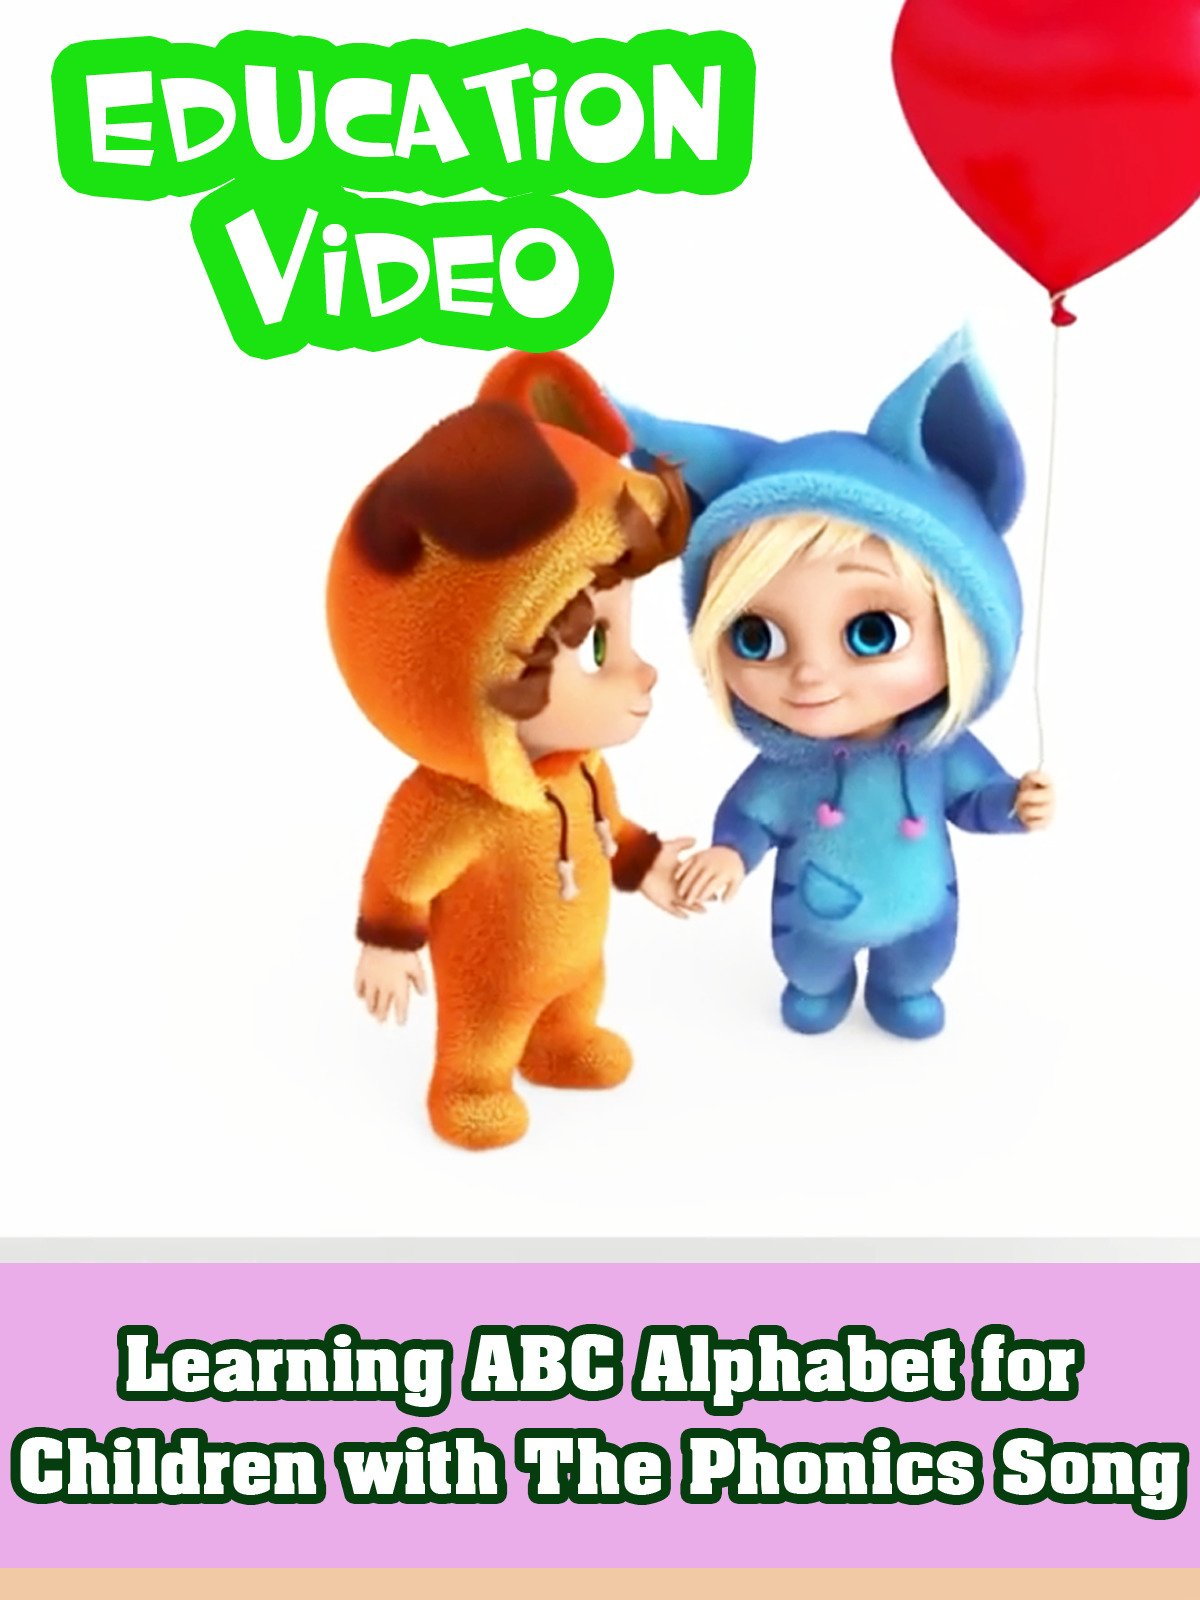 Learning ABC Alphabet for Children with The Phonics Song